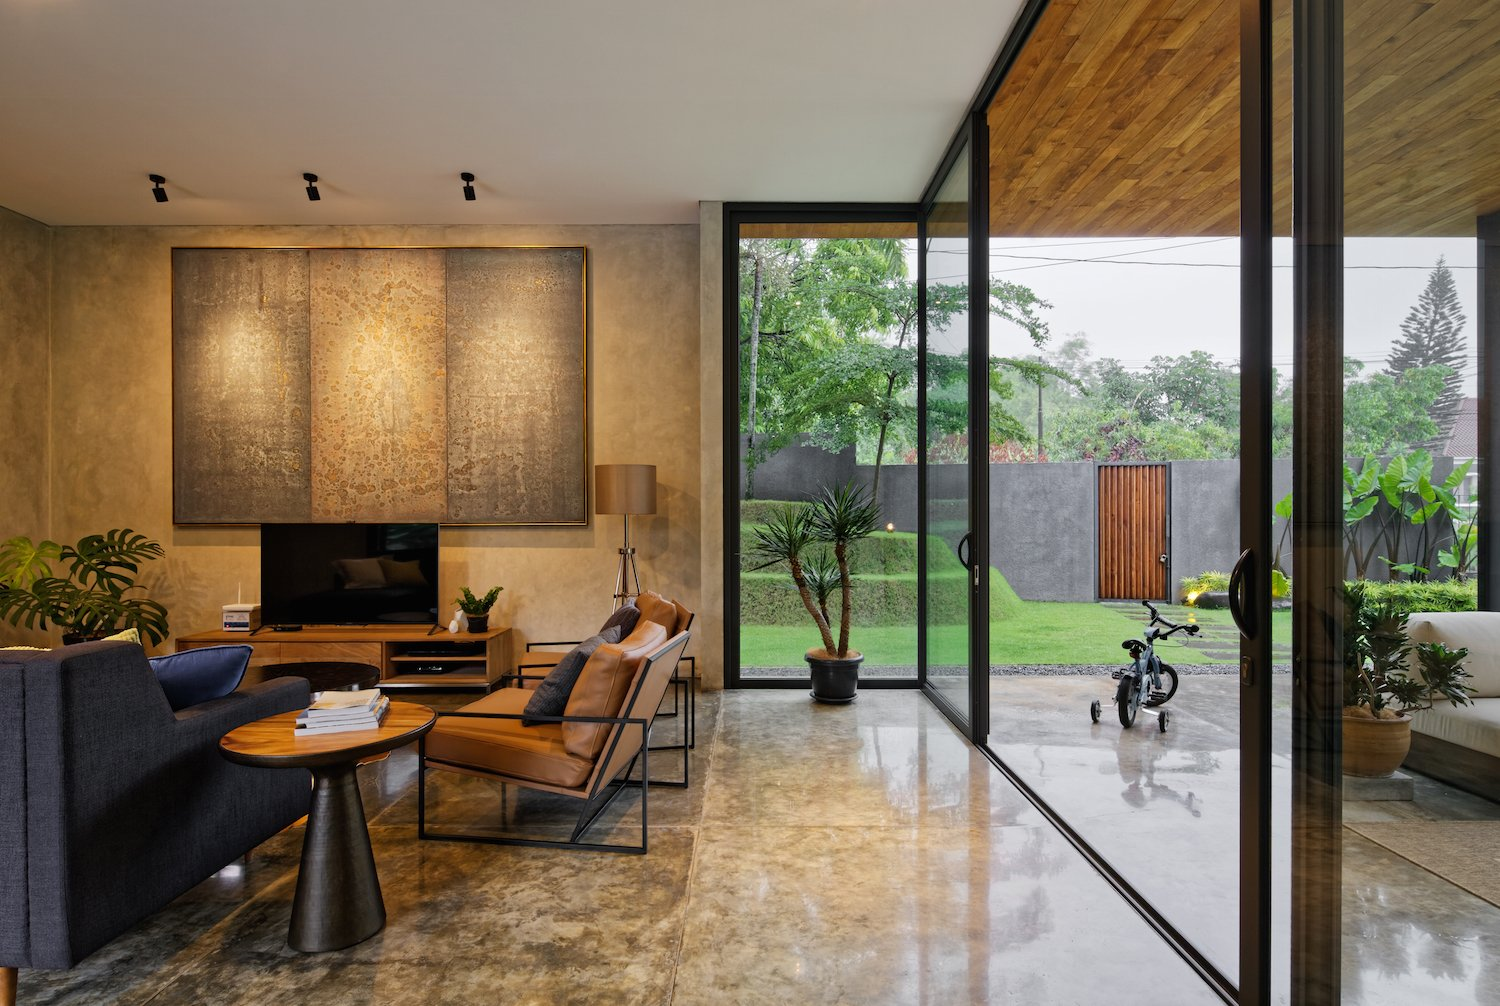 Raw concrete walls and polished concrete floors are used in the interior to form a neutral backdrop for built-in wood furniture and colorful rugs and artworks.